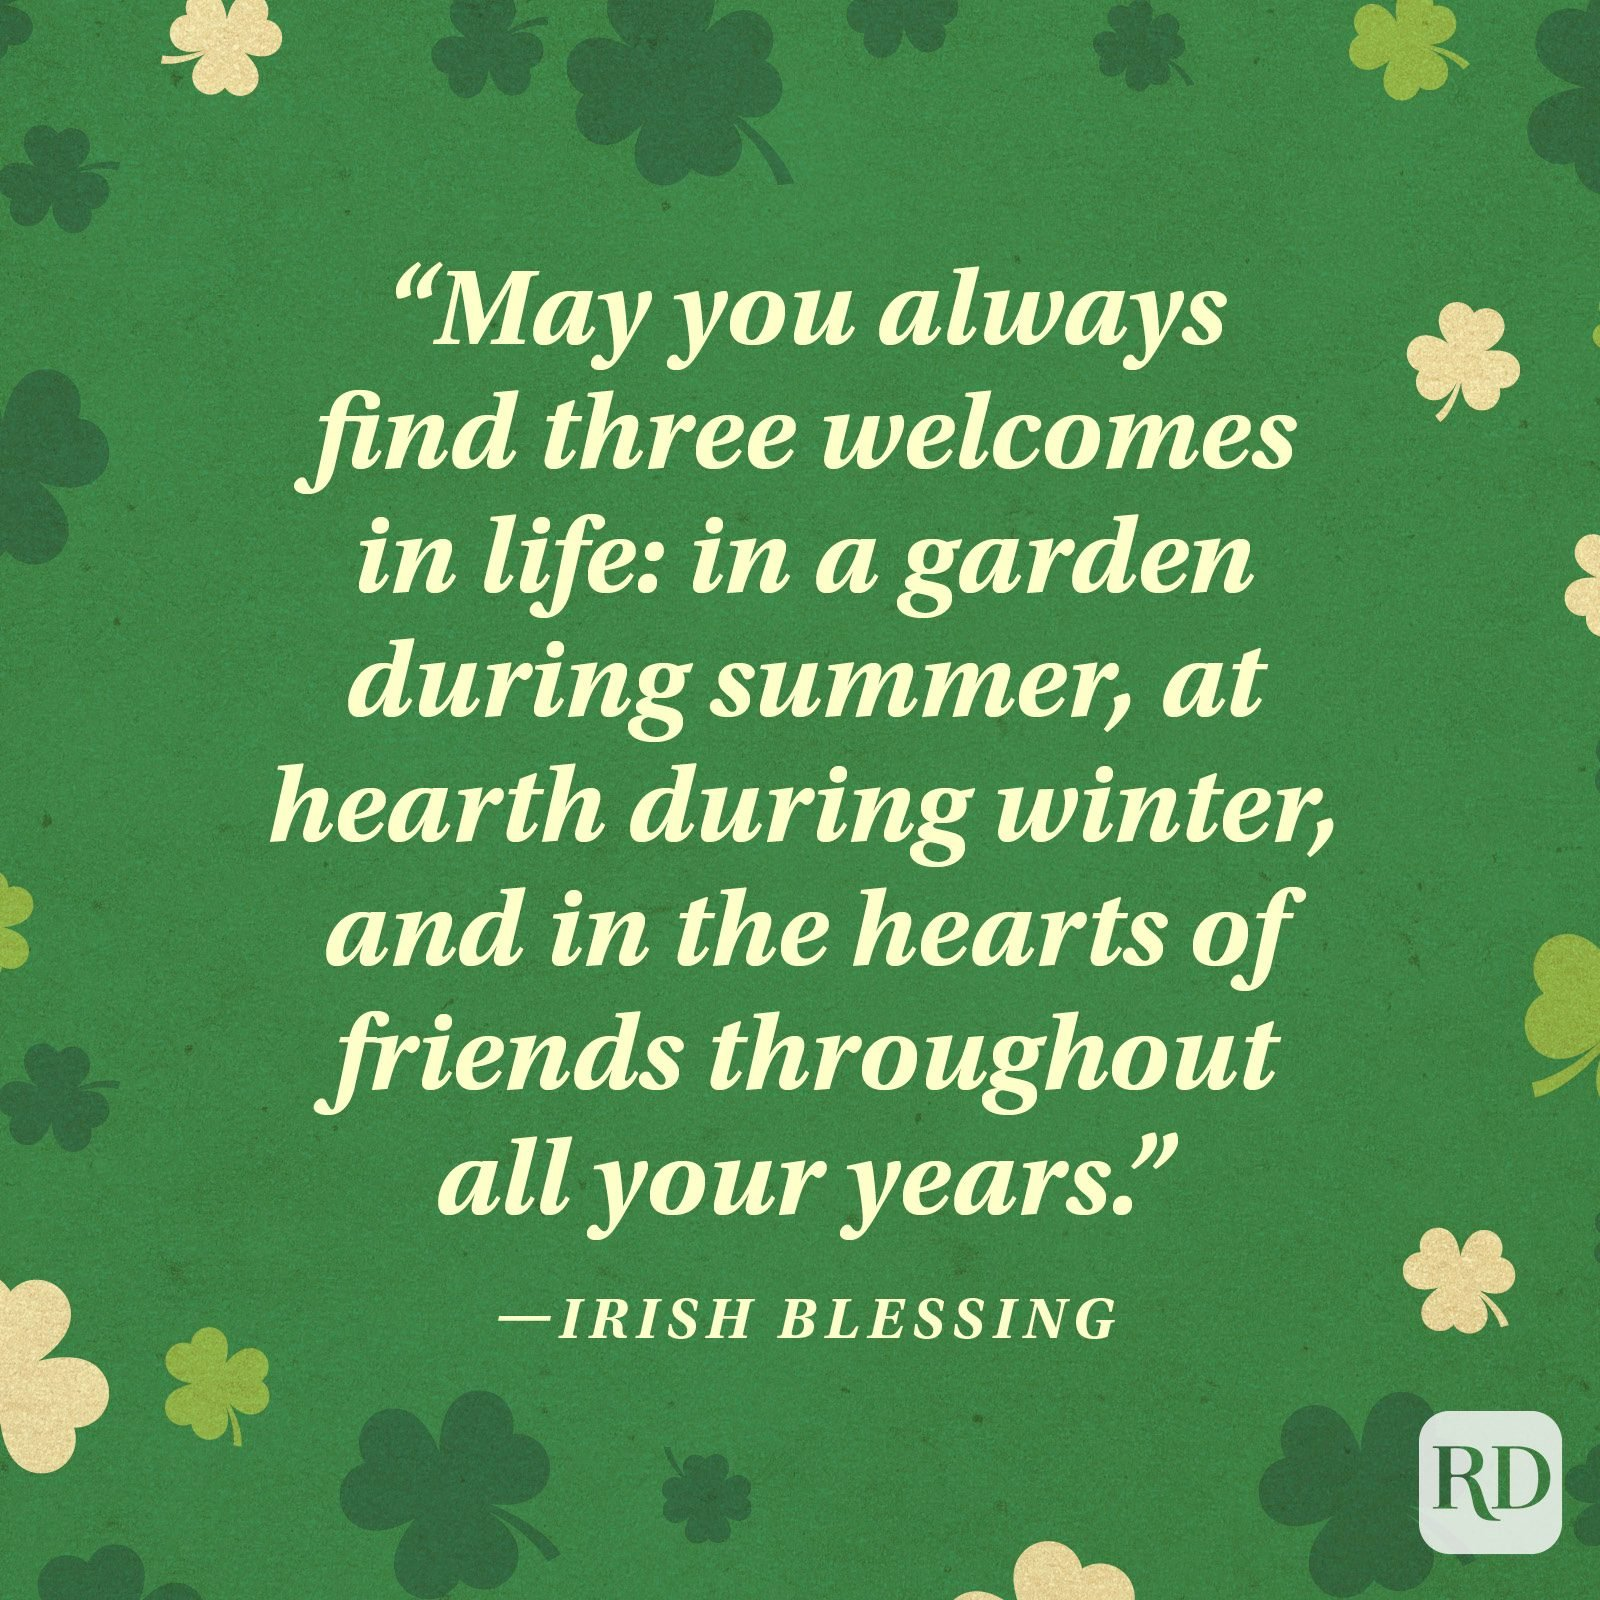 """May you always find three welcomes in life: in a garden during summer, at hearth during winter, and in the hearts of friends throughout all your years."" —Irish blessing"